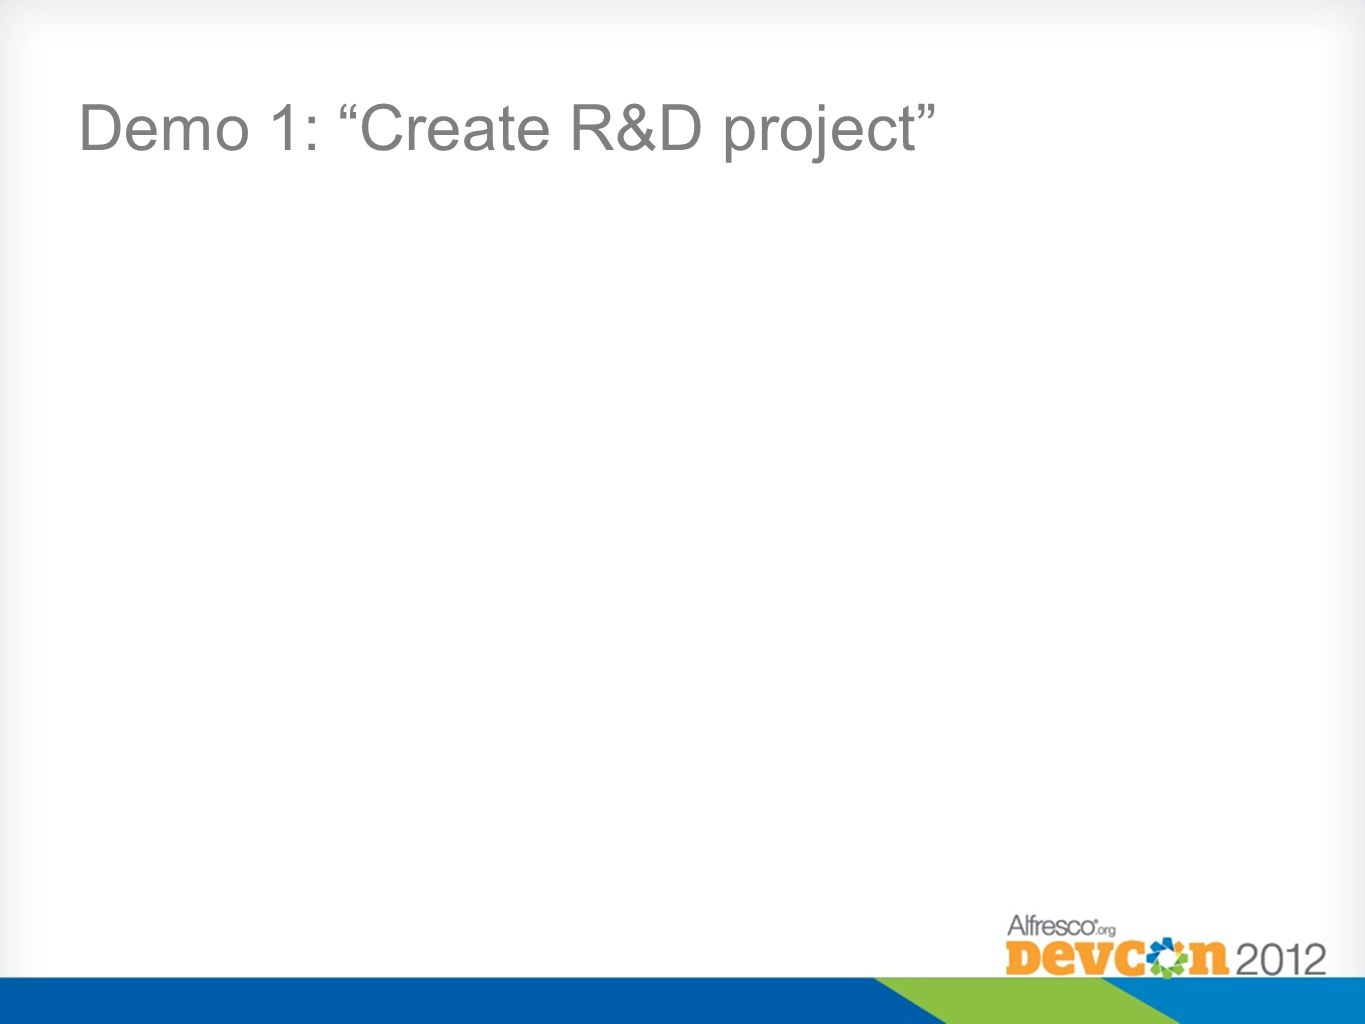 Demo 1: Create R&D project